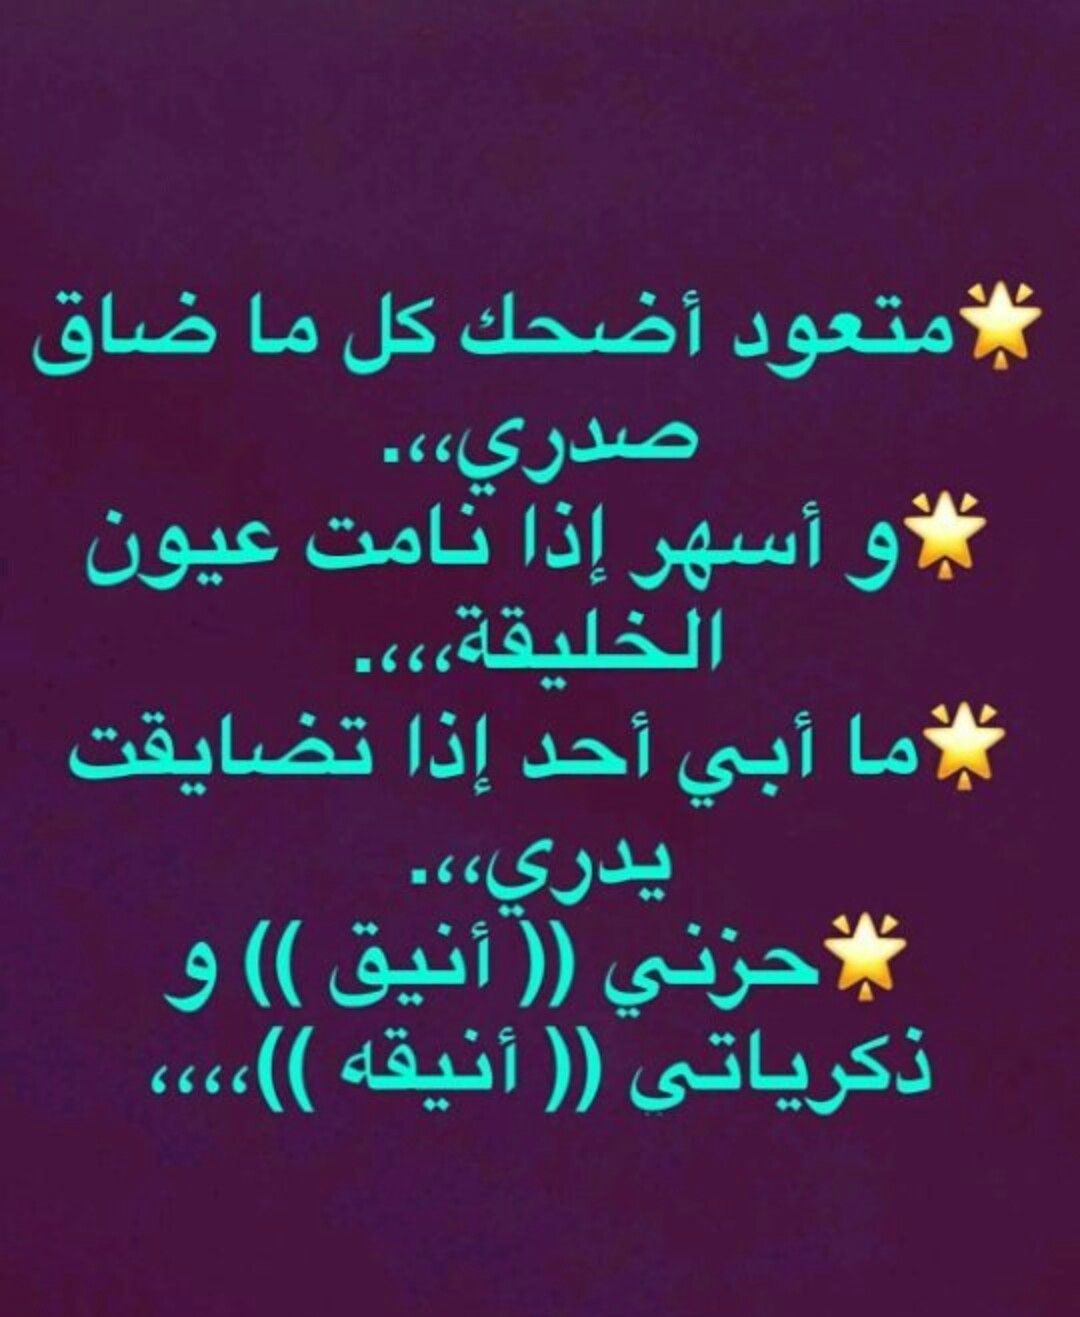 Pin By Crazy Girl 2 On كلام جميل Sayings Quotes Ili